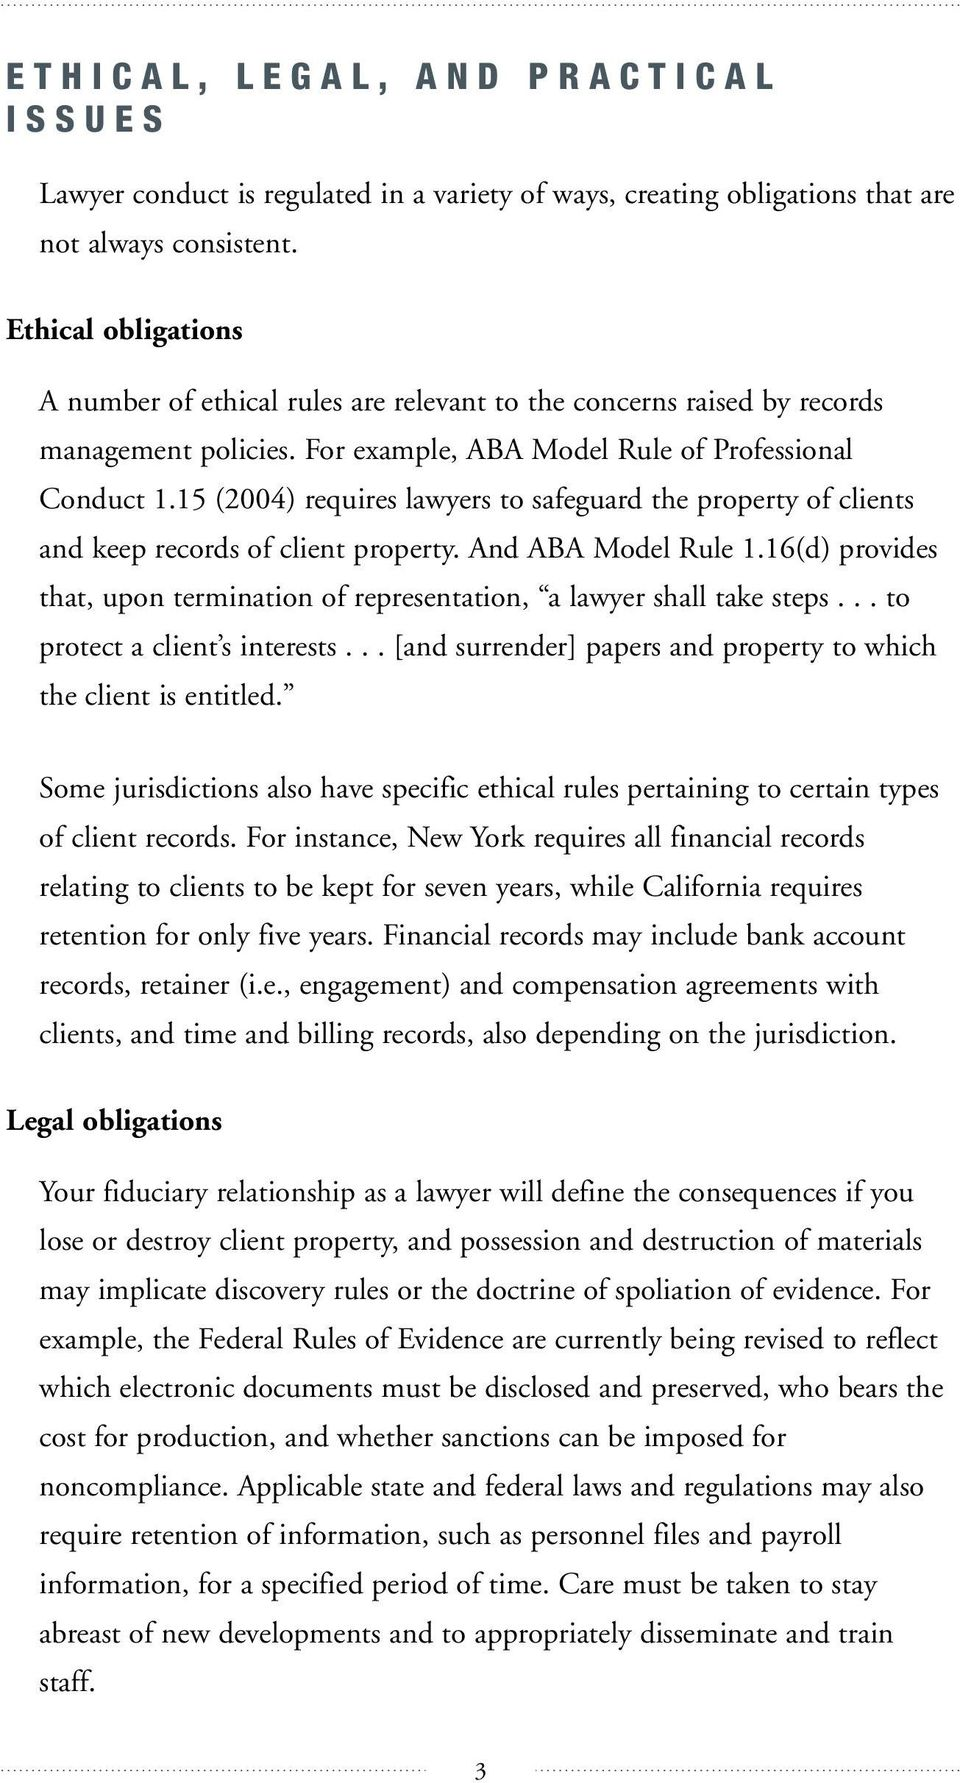 15 (2004) requires lawyers to safeguard the property of clients and keep records of client property. And ABA Model Rule 1.